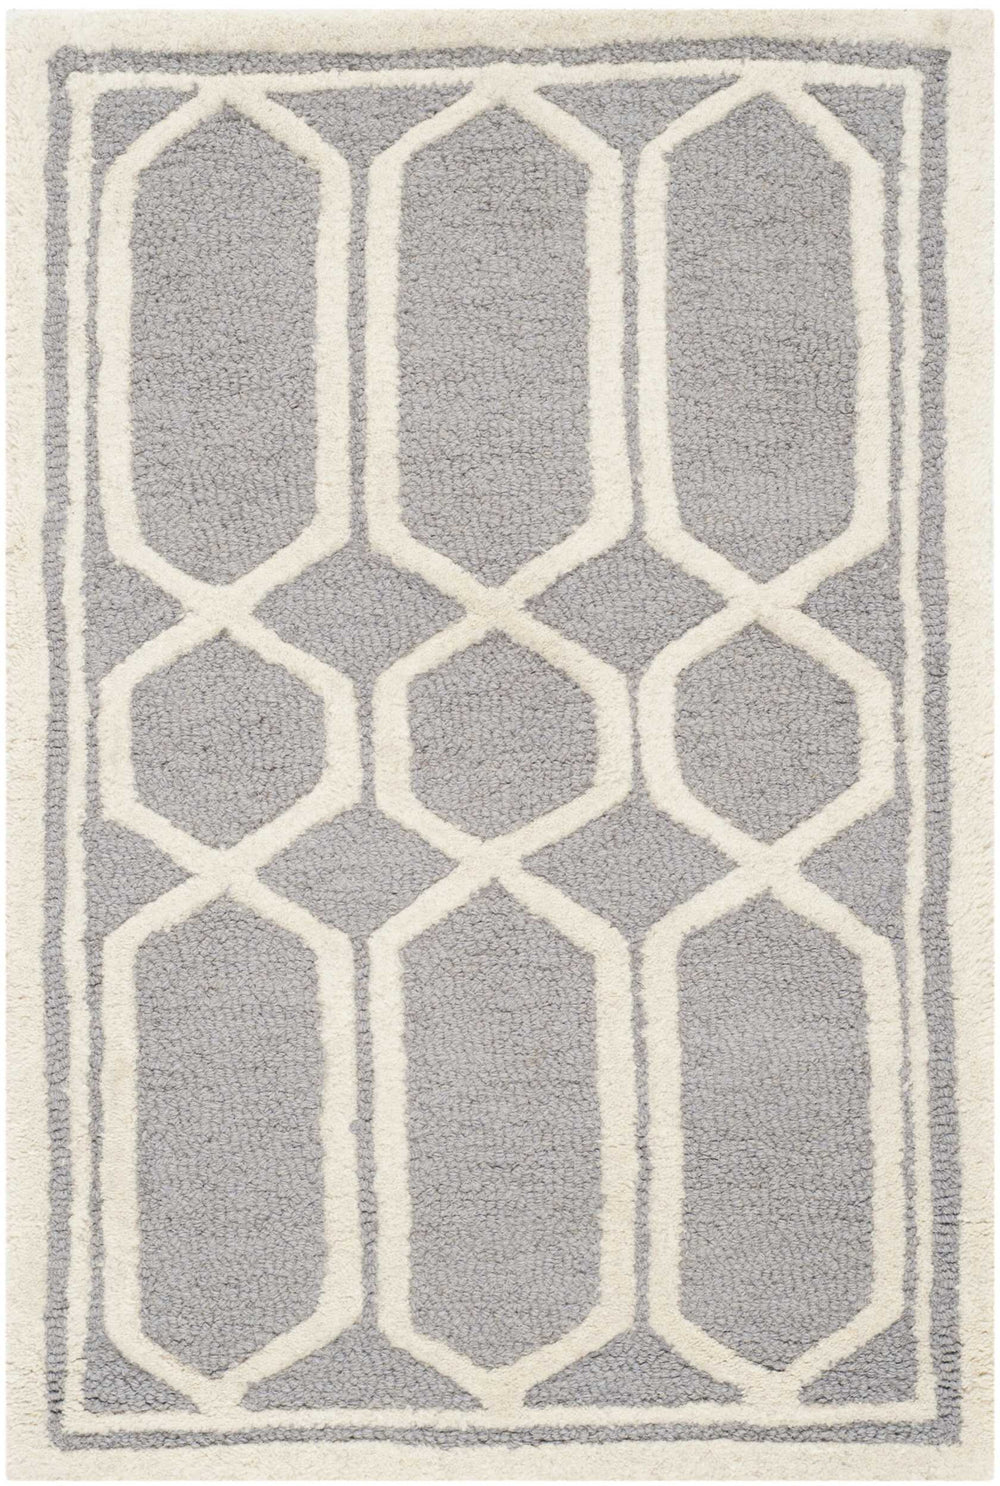 Safavieh Cambridge CAM138 Area Rug